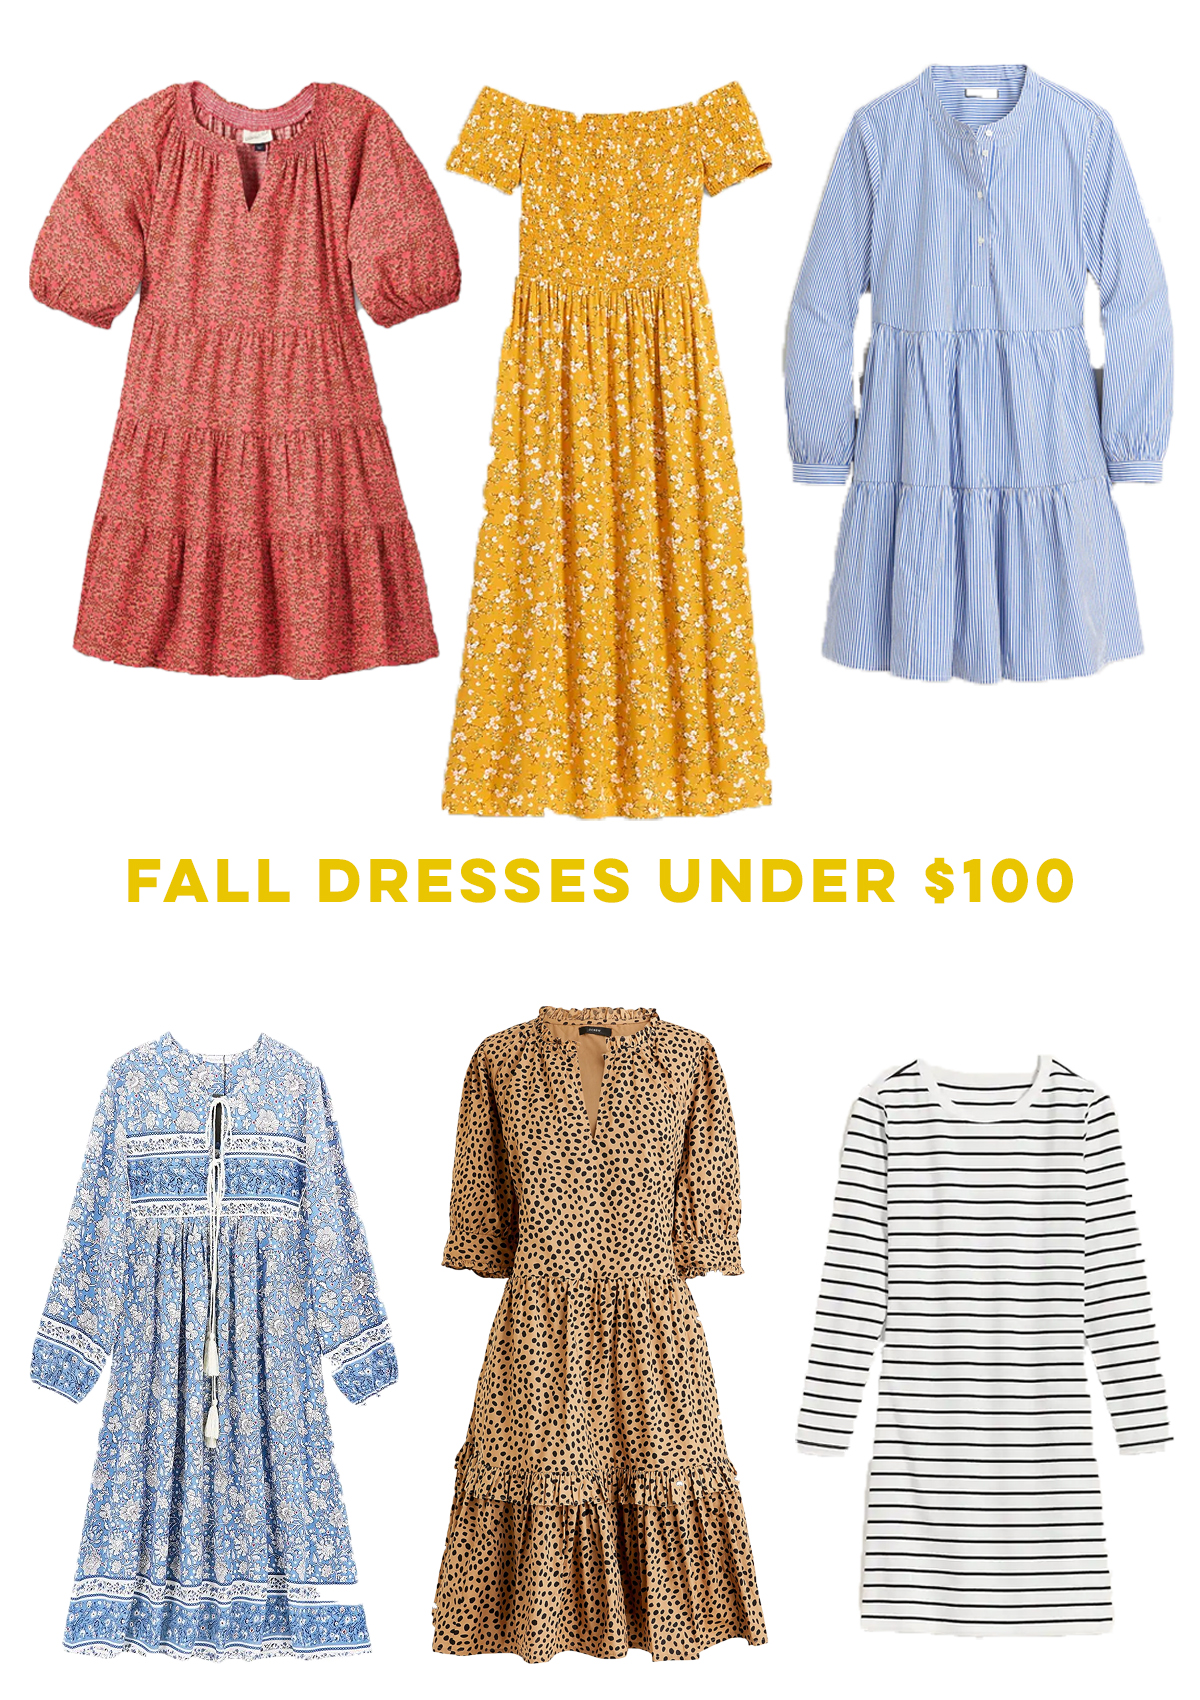 Affordable Fall Dresses Under $100 / Babydoll Dress / Tiered Dress / Ruched Dress / Striped Dress / Long Sleeve Dress / Leopard Print Dress / Floral Dress - Sunshine Style, A Preppy Fashion and Coastal Lifestyle Blog by Katie